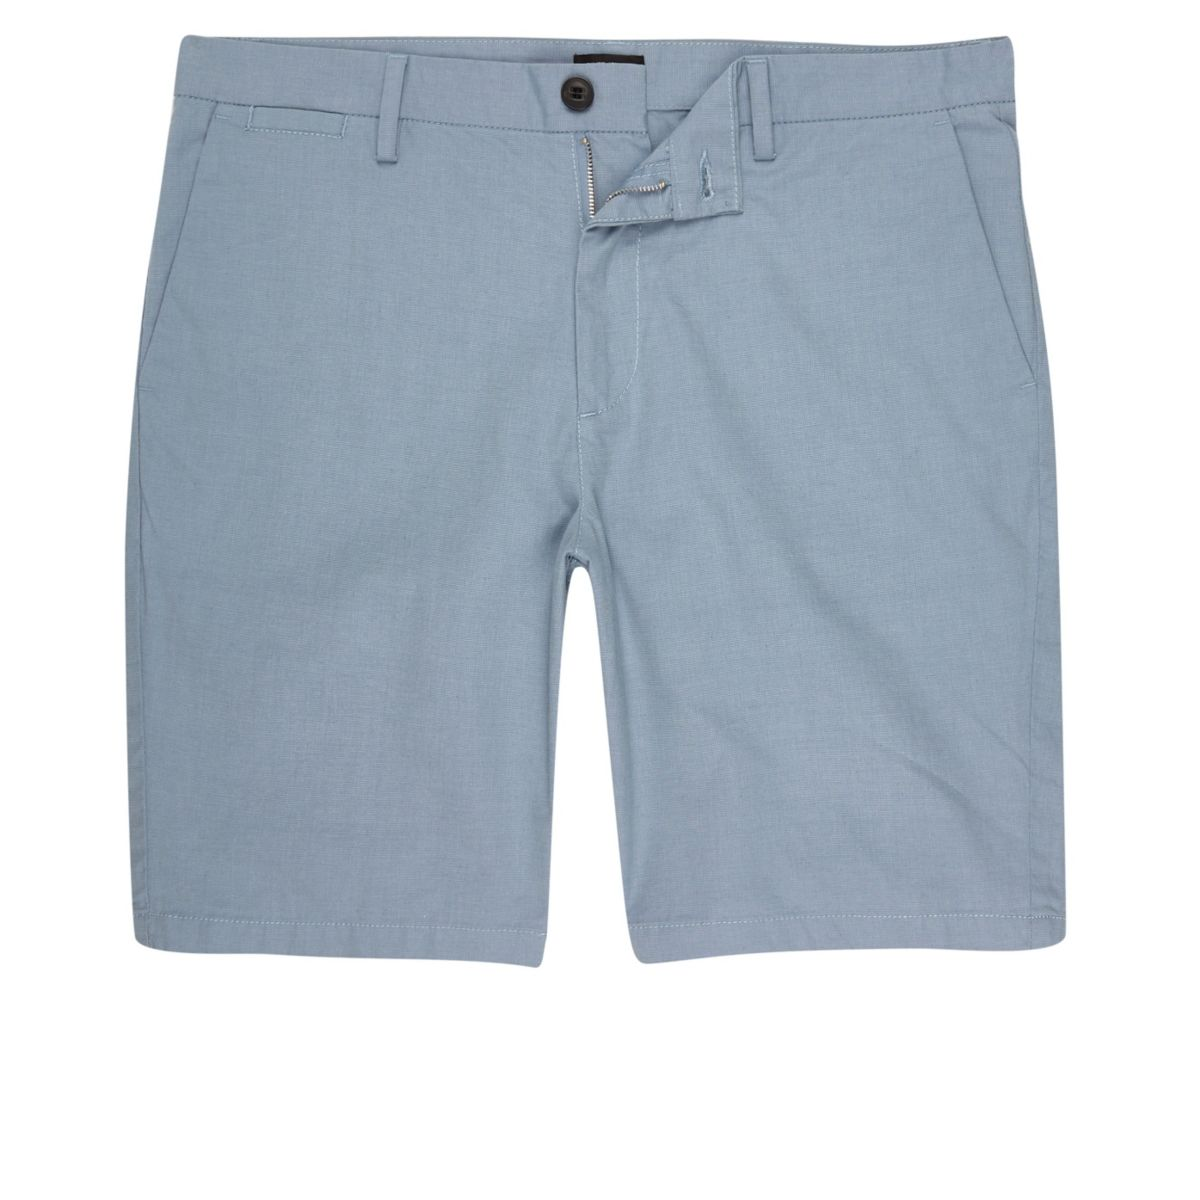 Light blue slim fit shorts